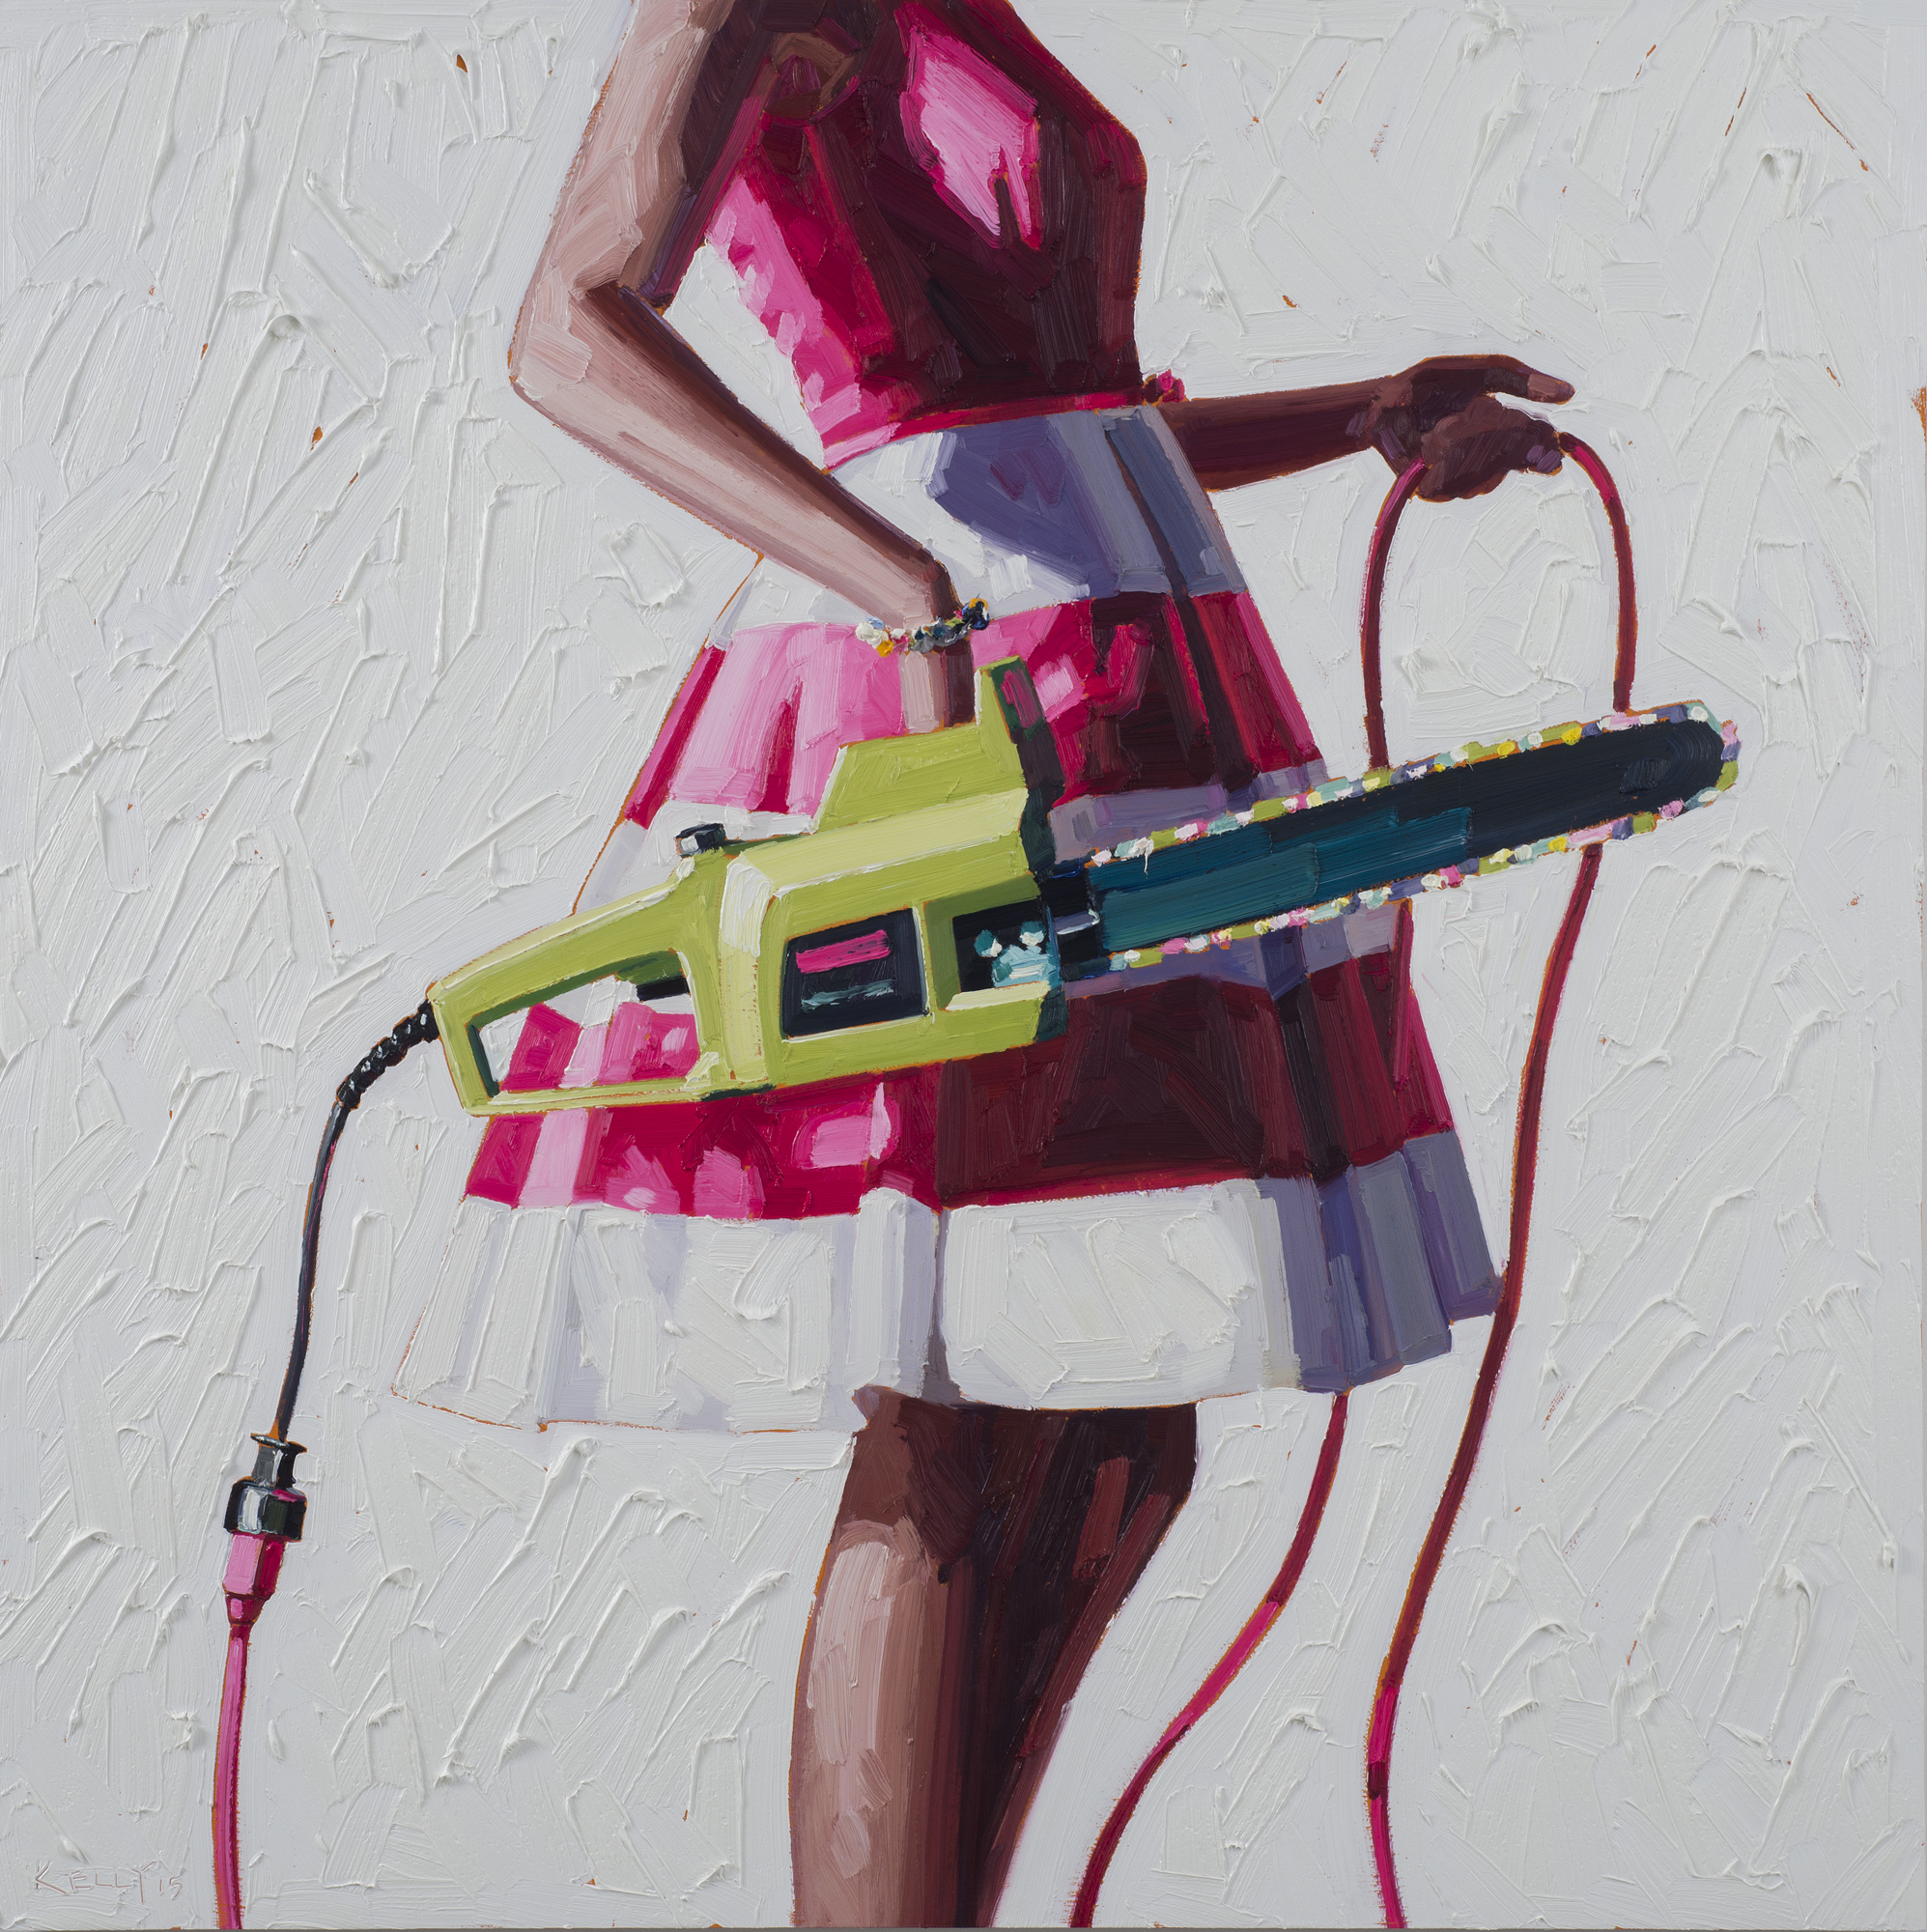 Labor Force, 2015, oil on panel, 44 in x 44 in.